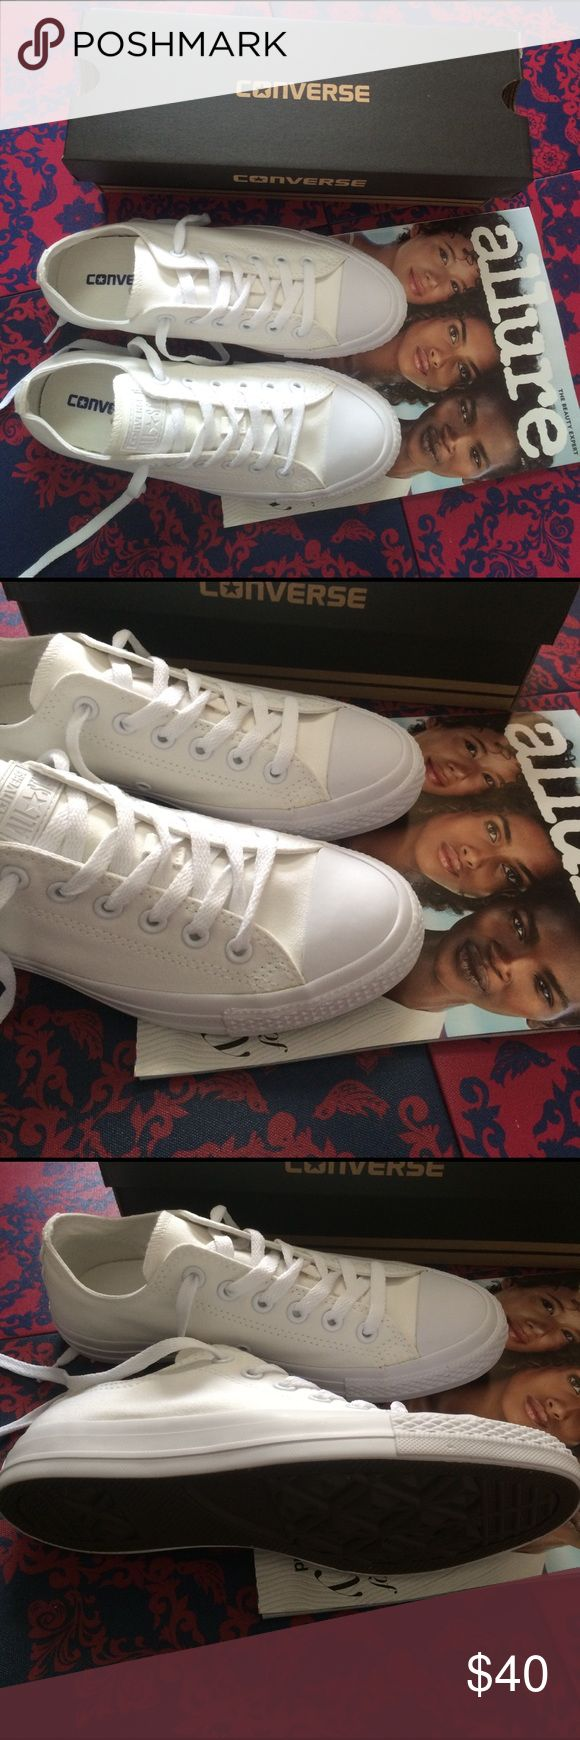 CONVERSE WOMENS SIZE 7.5 ALL WHITE SHOES NIB BRAND NEW WITH BOX ALL WHITE CANVAS MATERIAL CONVERSE CHUCK TAYLOR SHOES. SIZE 7.5 WOMENS. SHOES FIT TRUE TO SIZE. PRICE IS VERY FIRM. ✨ Converse Shoes Sneakers